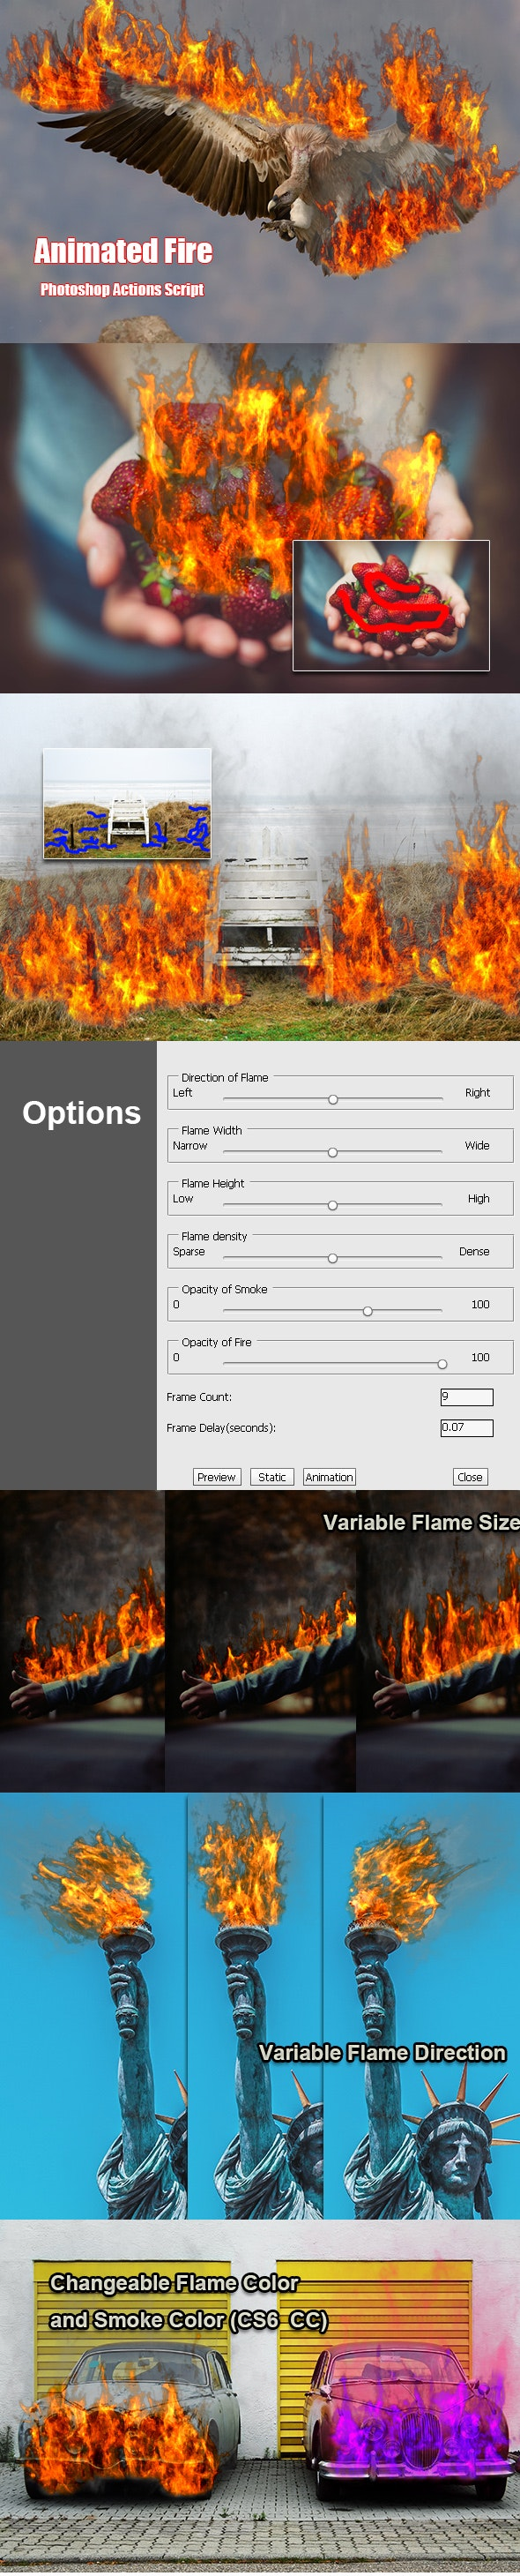 Animated Fire Photoshop Add-on - Photo Effects Actions